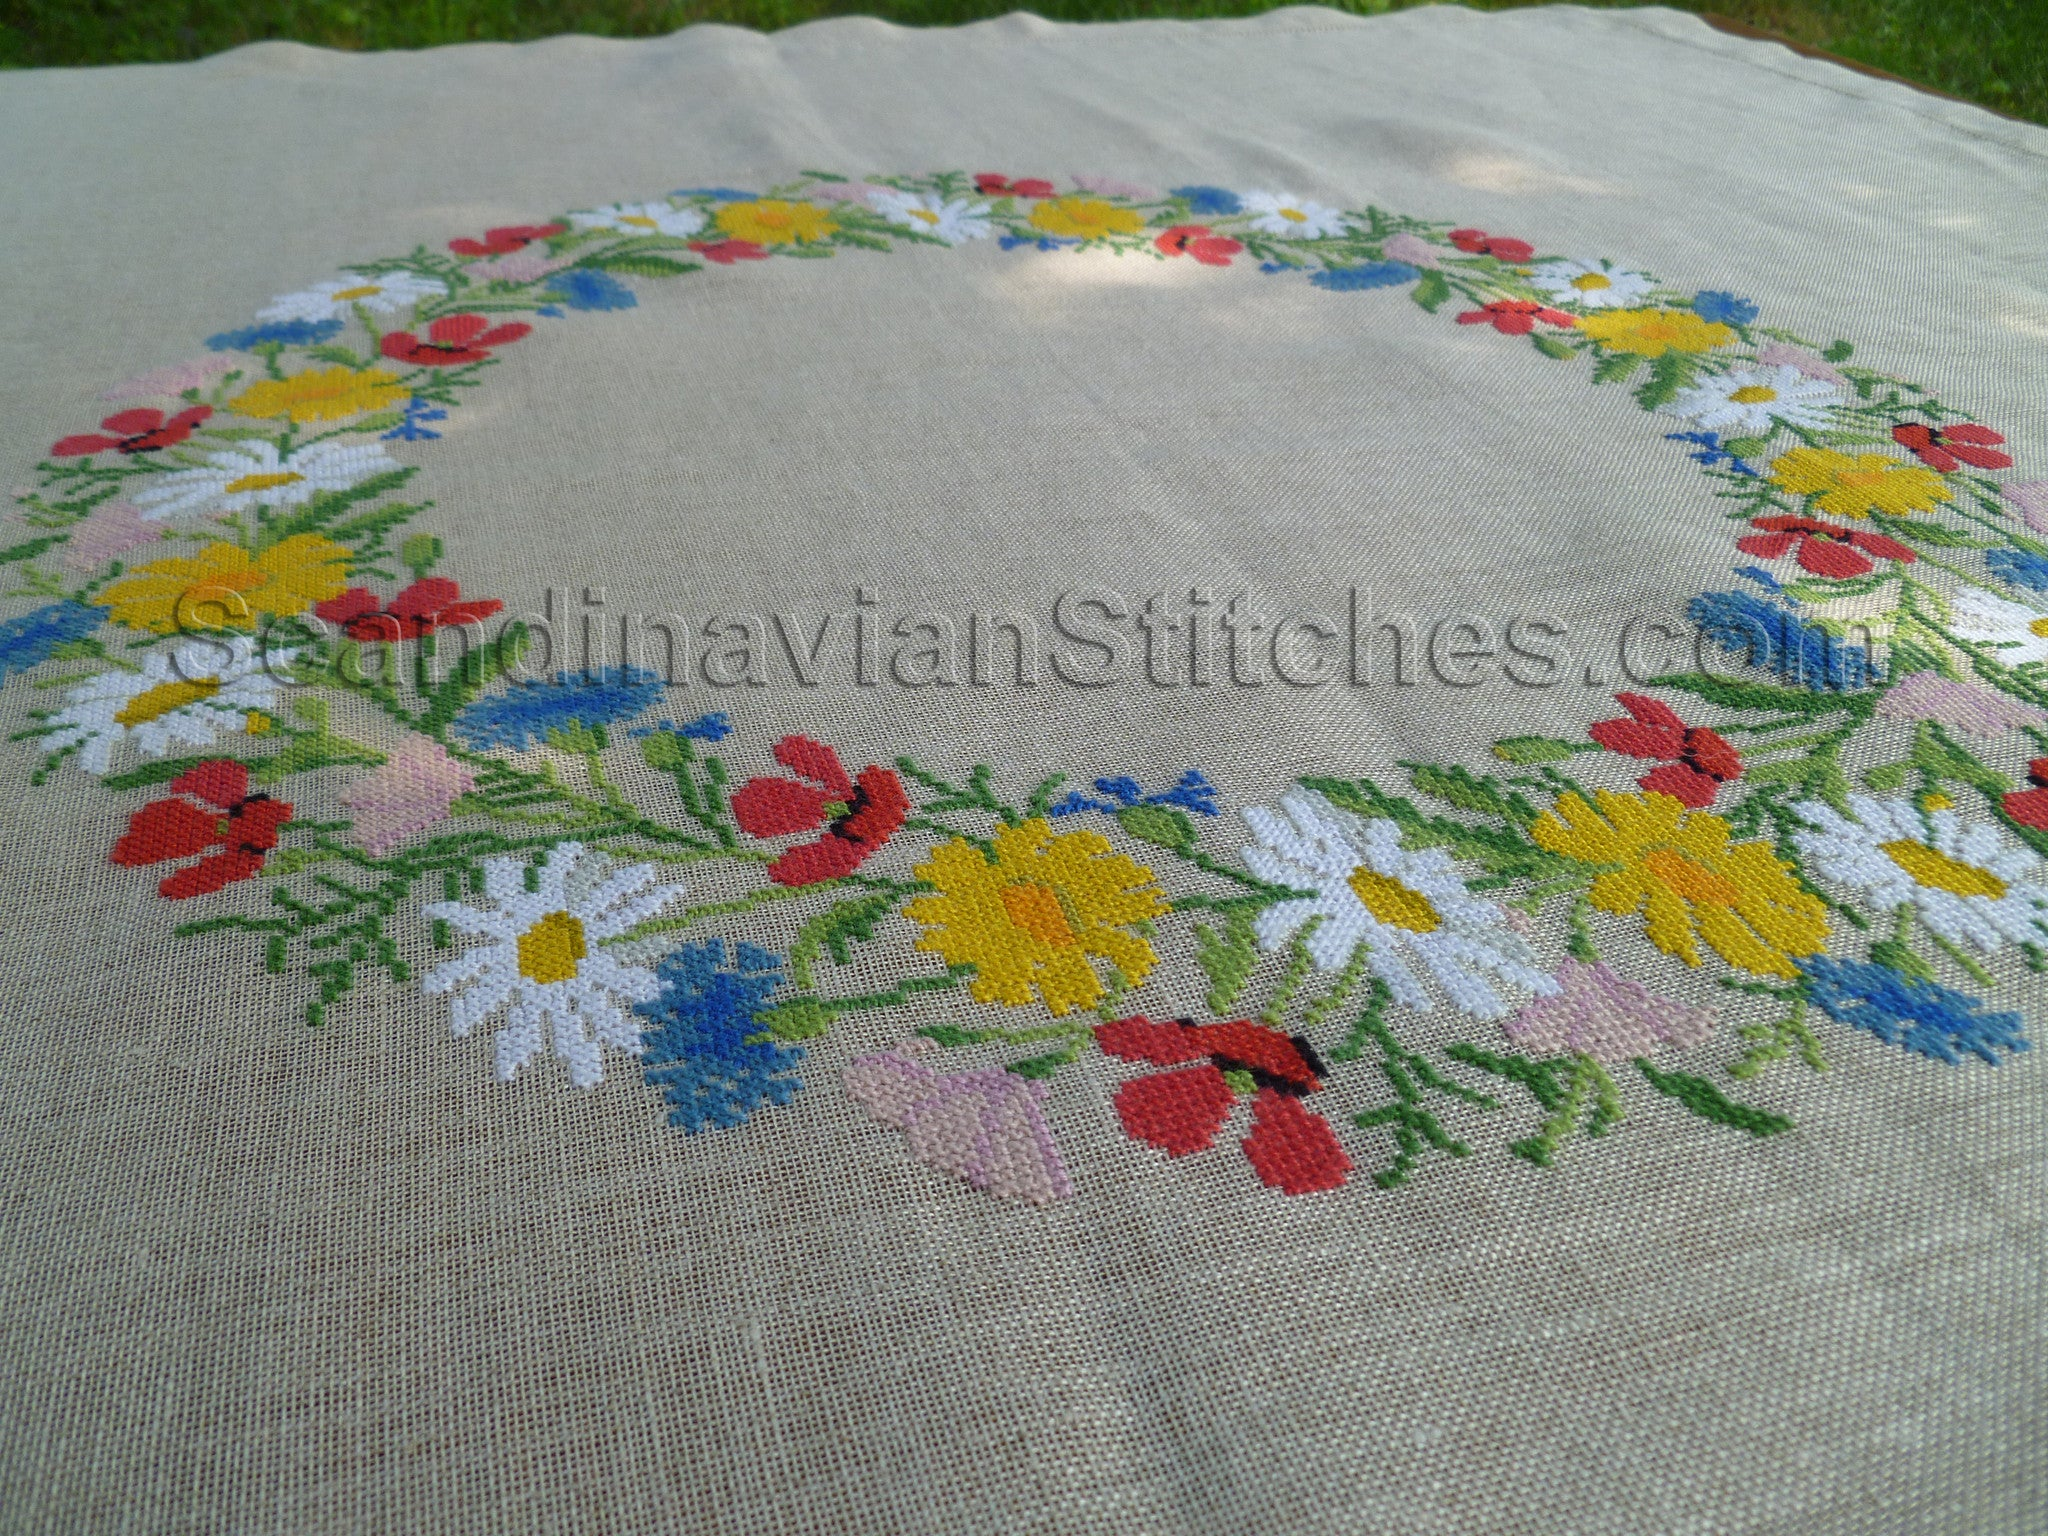 Summer Garland Tablecloth